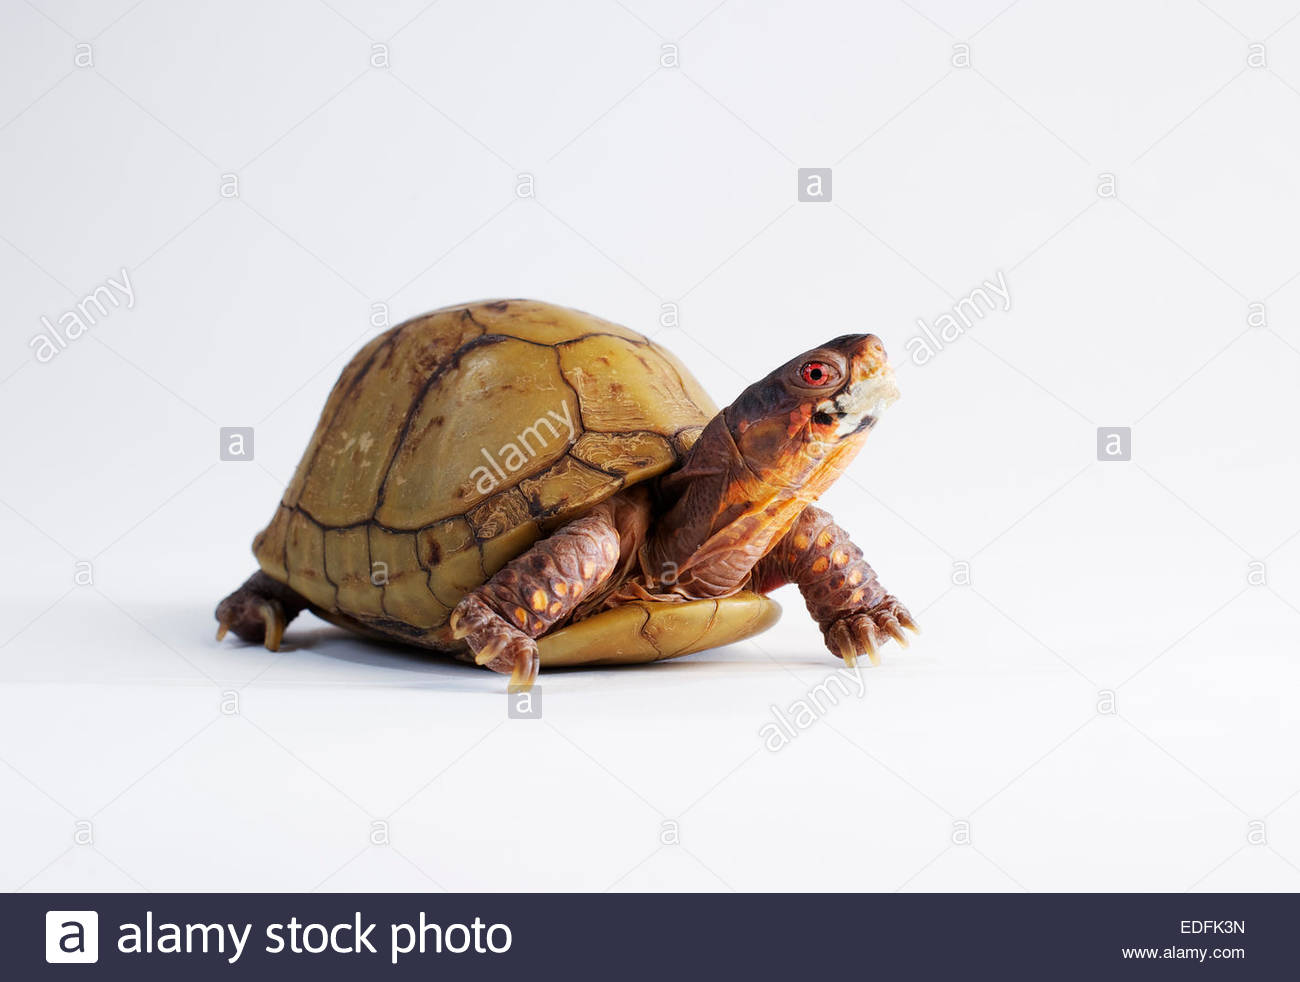 A box turtle (Terrapene) photographed in the studio. - Stock Image